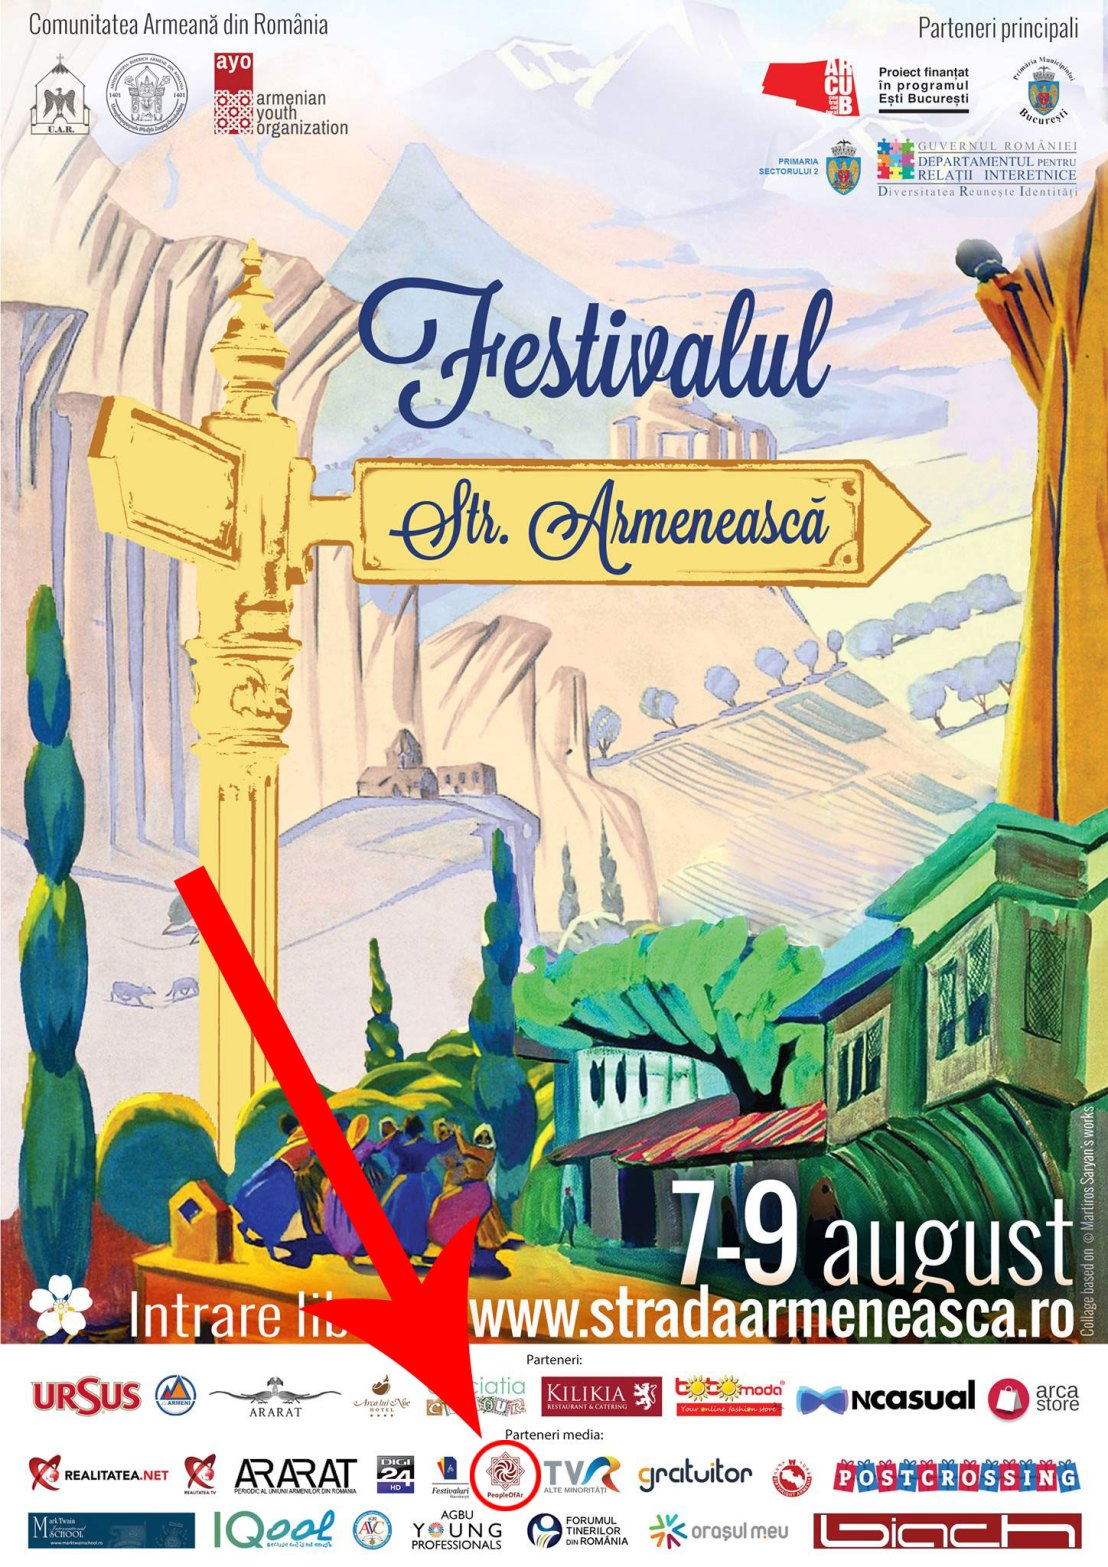 PeopleOfAr logo on the Poster of the Armenian Street Festival in Bucharest, Romania